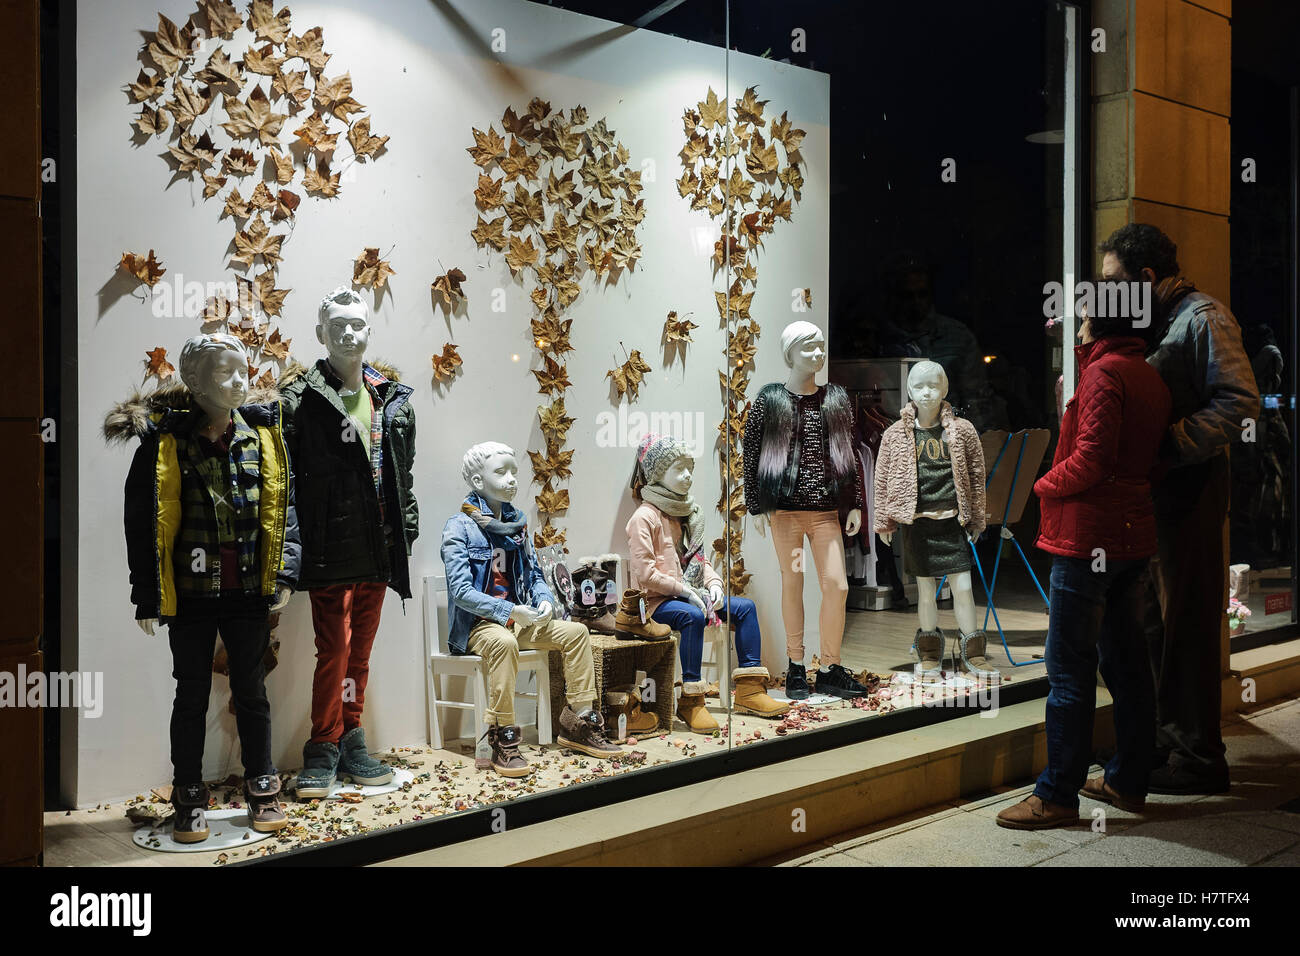 Sale of winter clothes for young children, in a showcase of the town of Colindres, Cantabria, Spain, Europe. - Stock Image